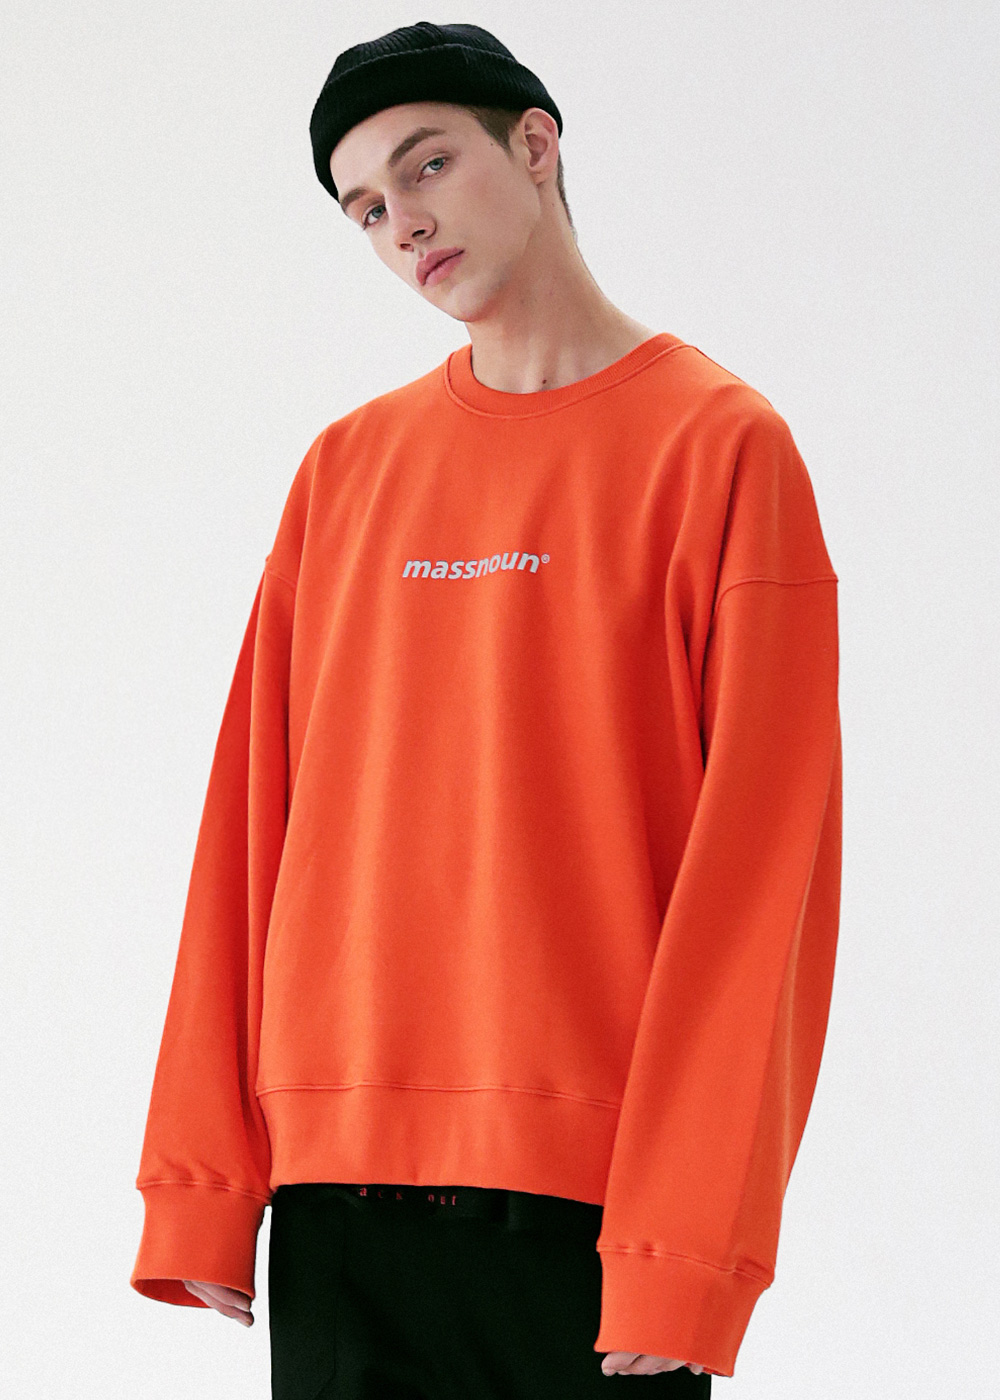 MOVEMENT OVERSIZED CREWNECK MFVCR002-OR